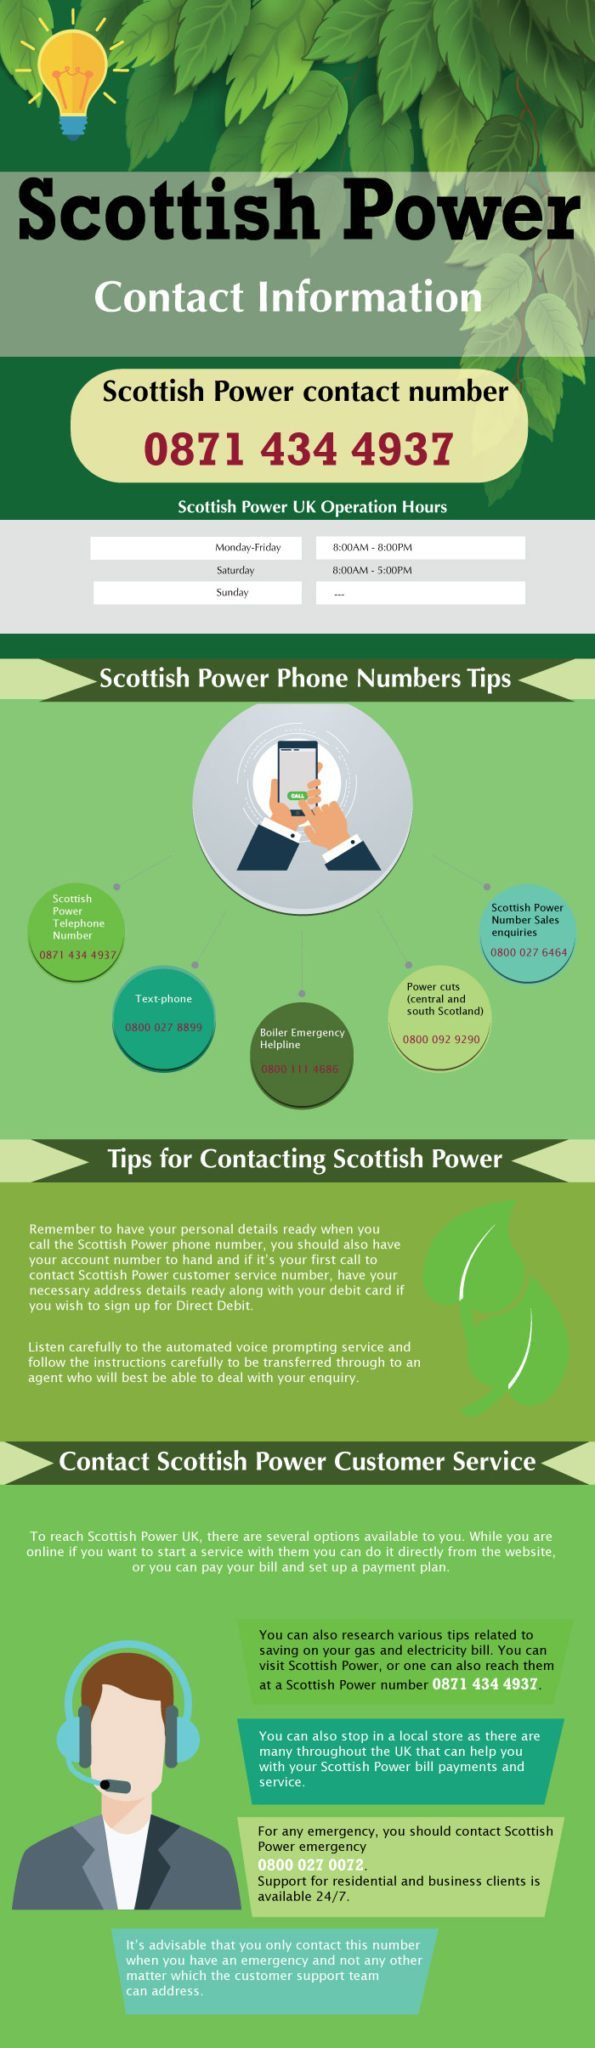 Scottish Power Customer Service